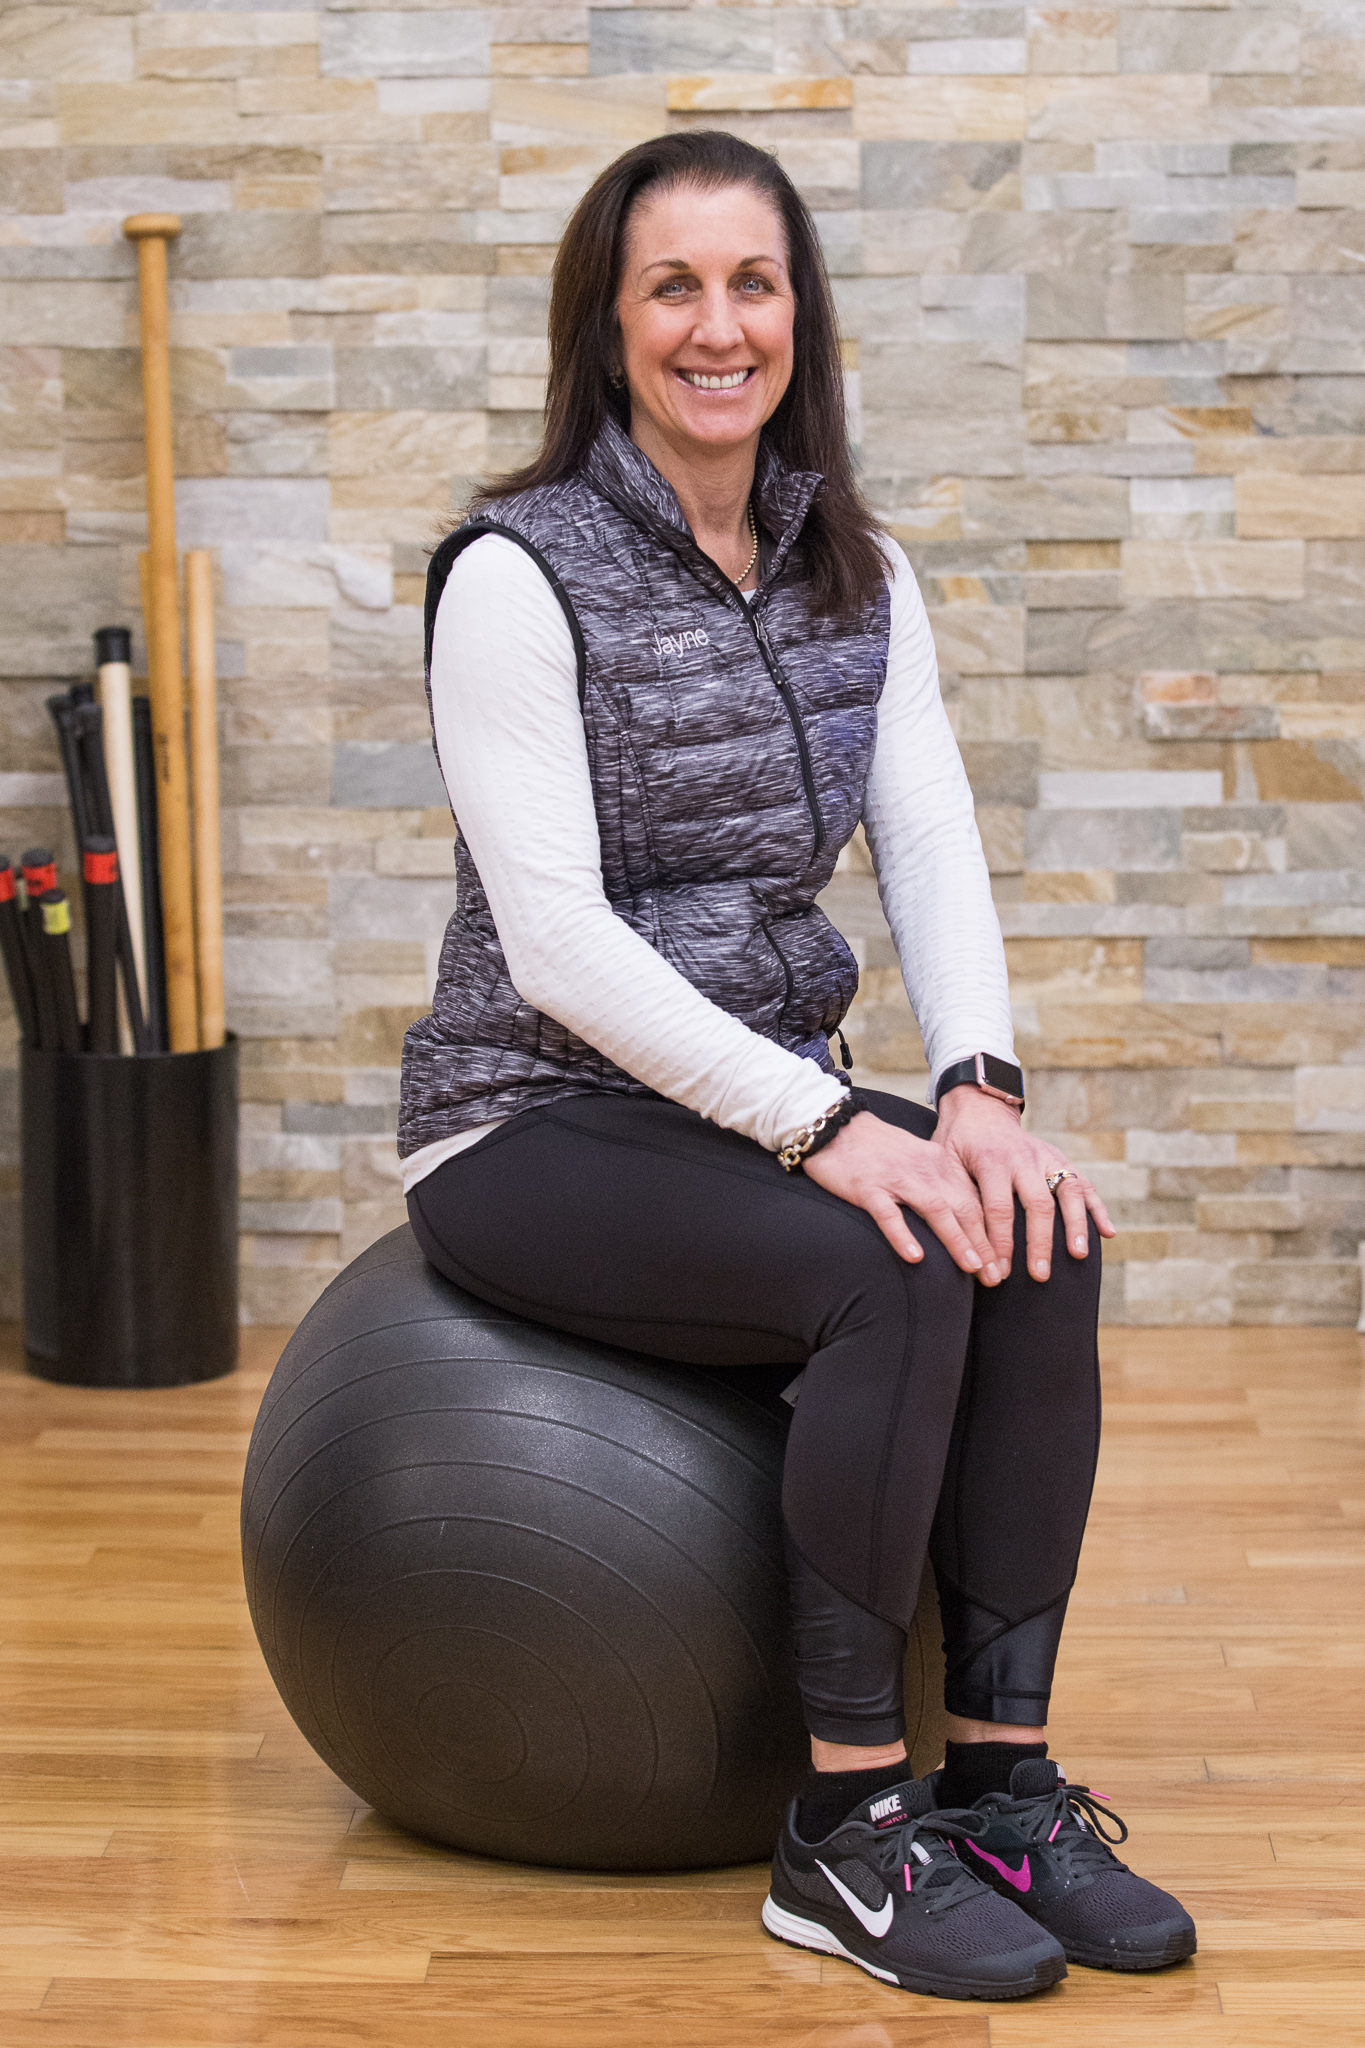 Jayne Cattaneo - Jayne has been teaching fitness on the South Shore for over 40 years. She has been comprehensively certified since XXXX. Jayne brings energy and excitement to every session.Jayne has a passion for helping individuals achieve their personal and fitness goals.